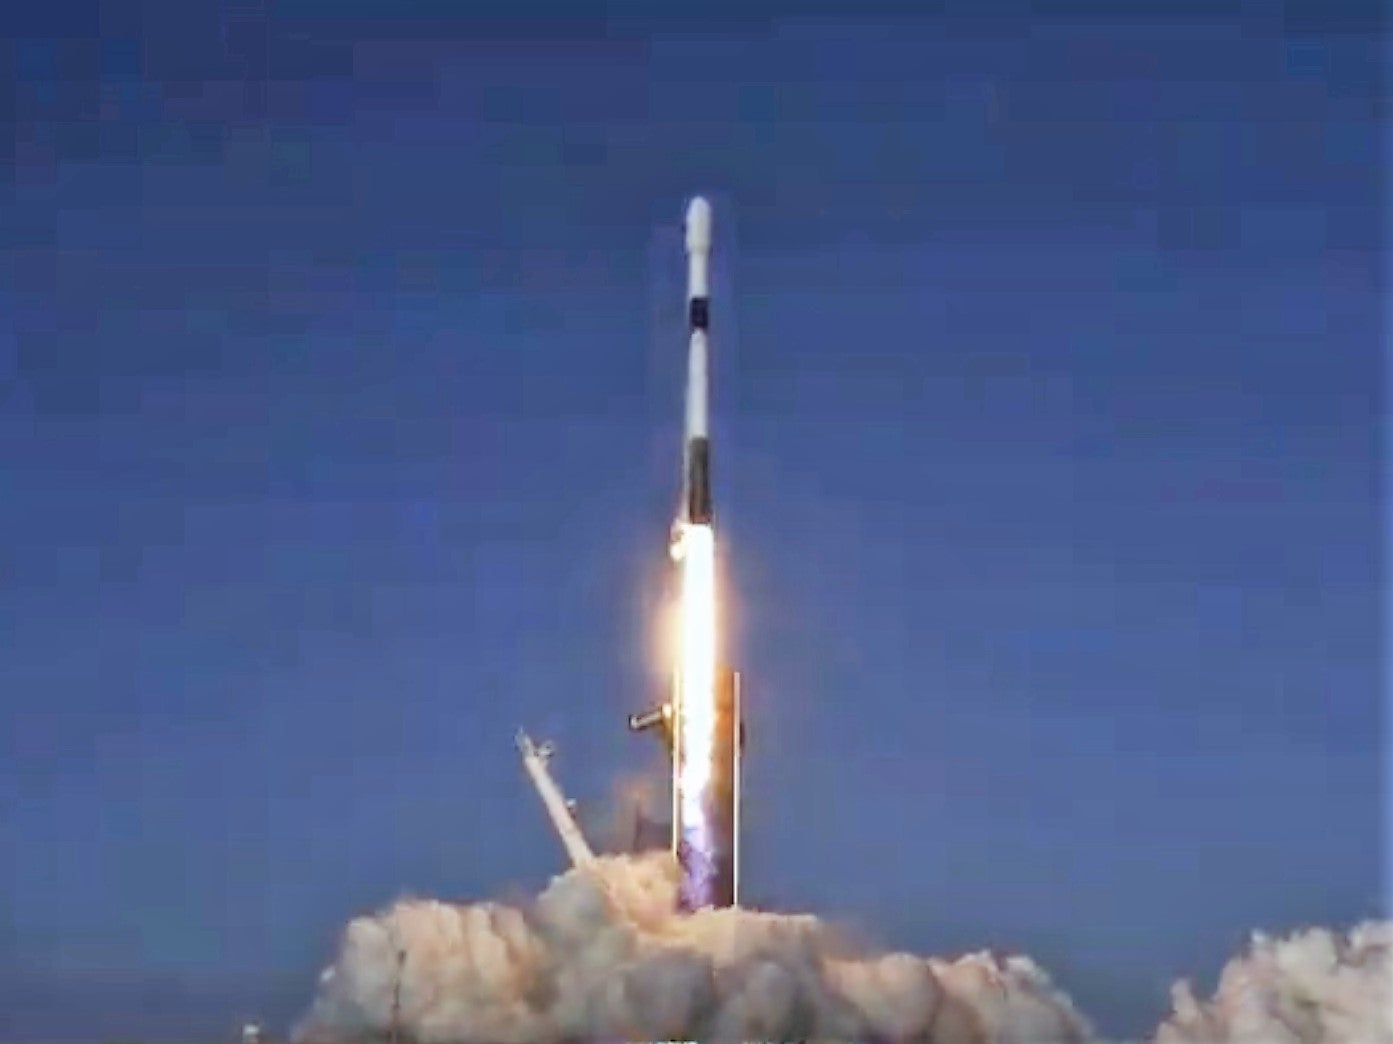 Elon Musk's SpaceX has launched controversial Starlink satellites